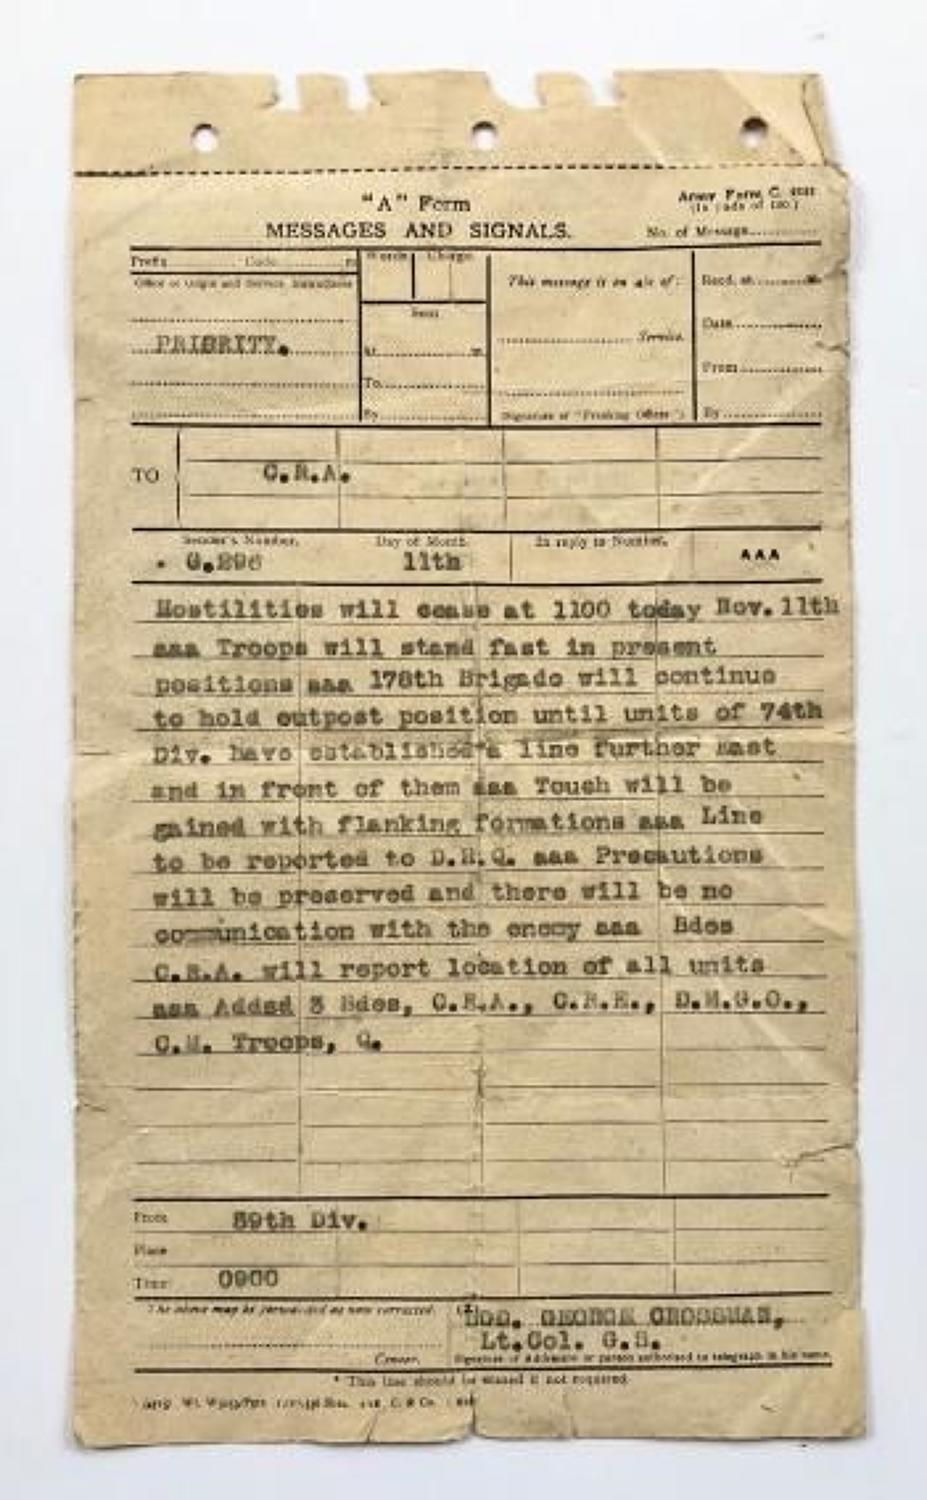 WW1 1918 59th Division End of Hostilities Original Message